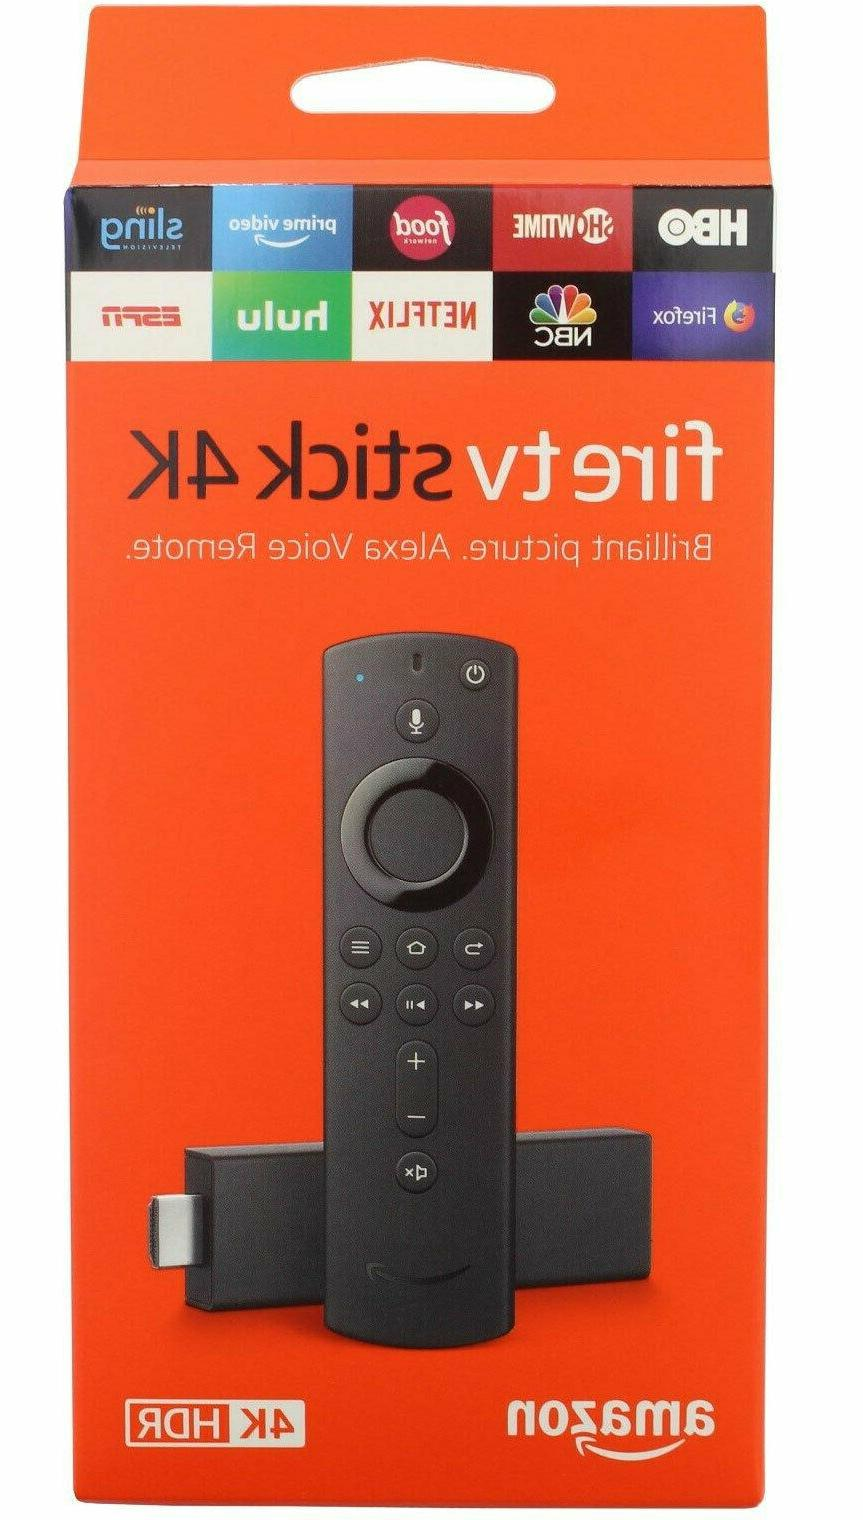 Amazon TV 4K All-NEW Voice Streaming Player